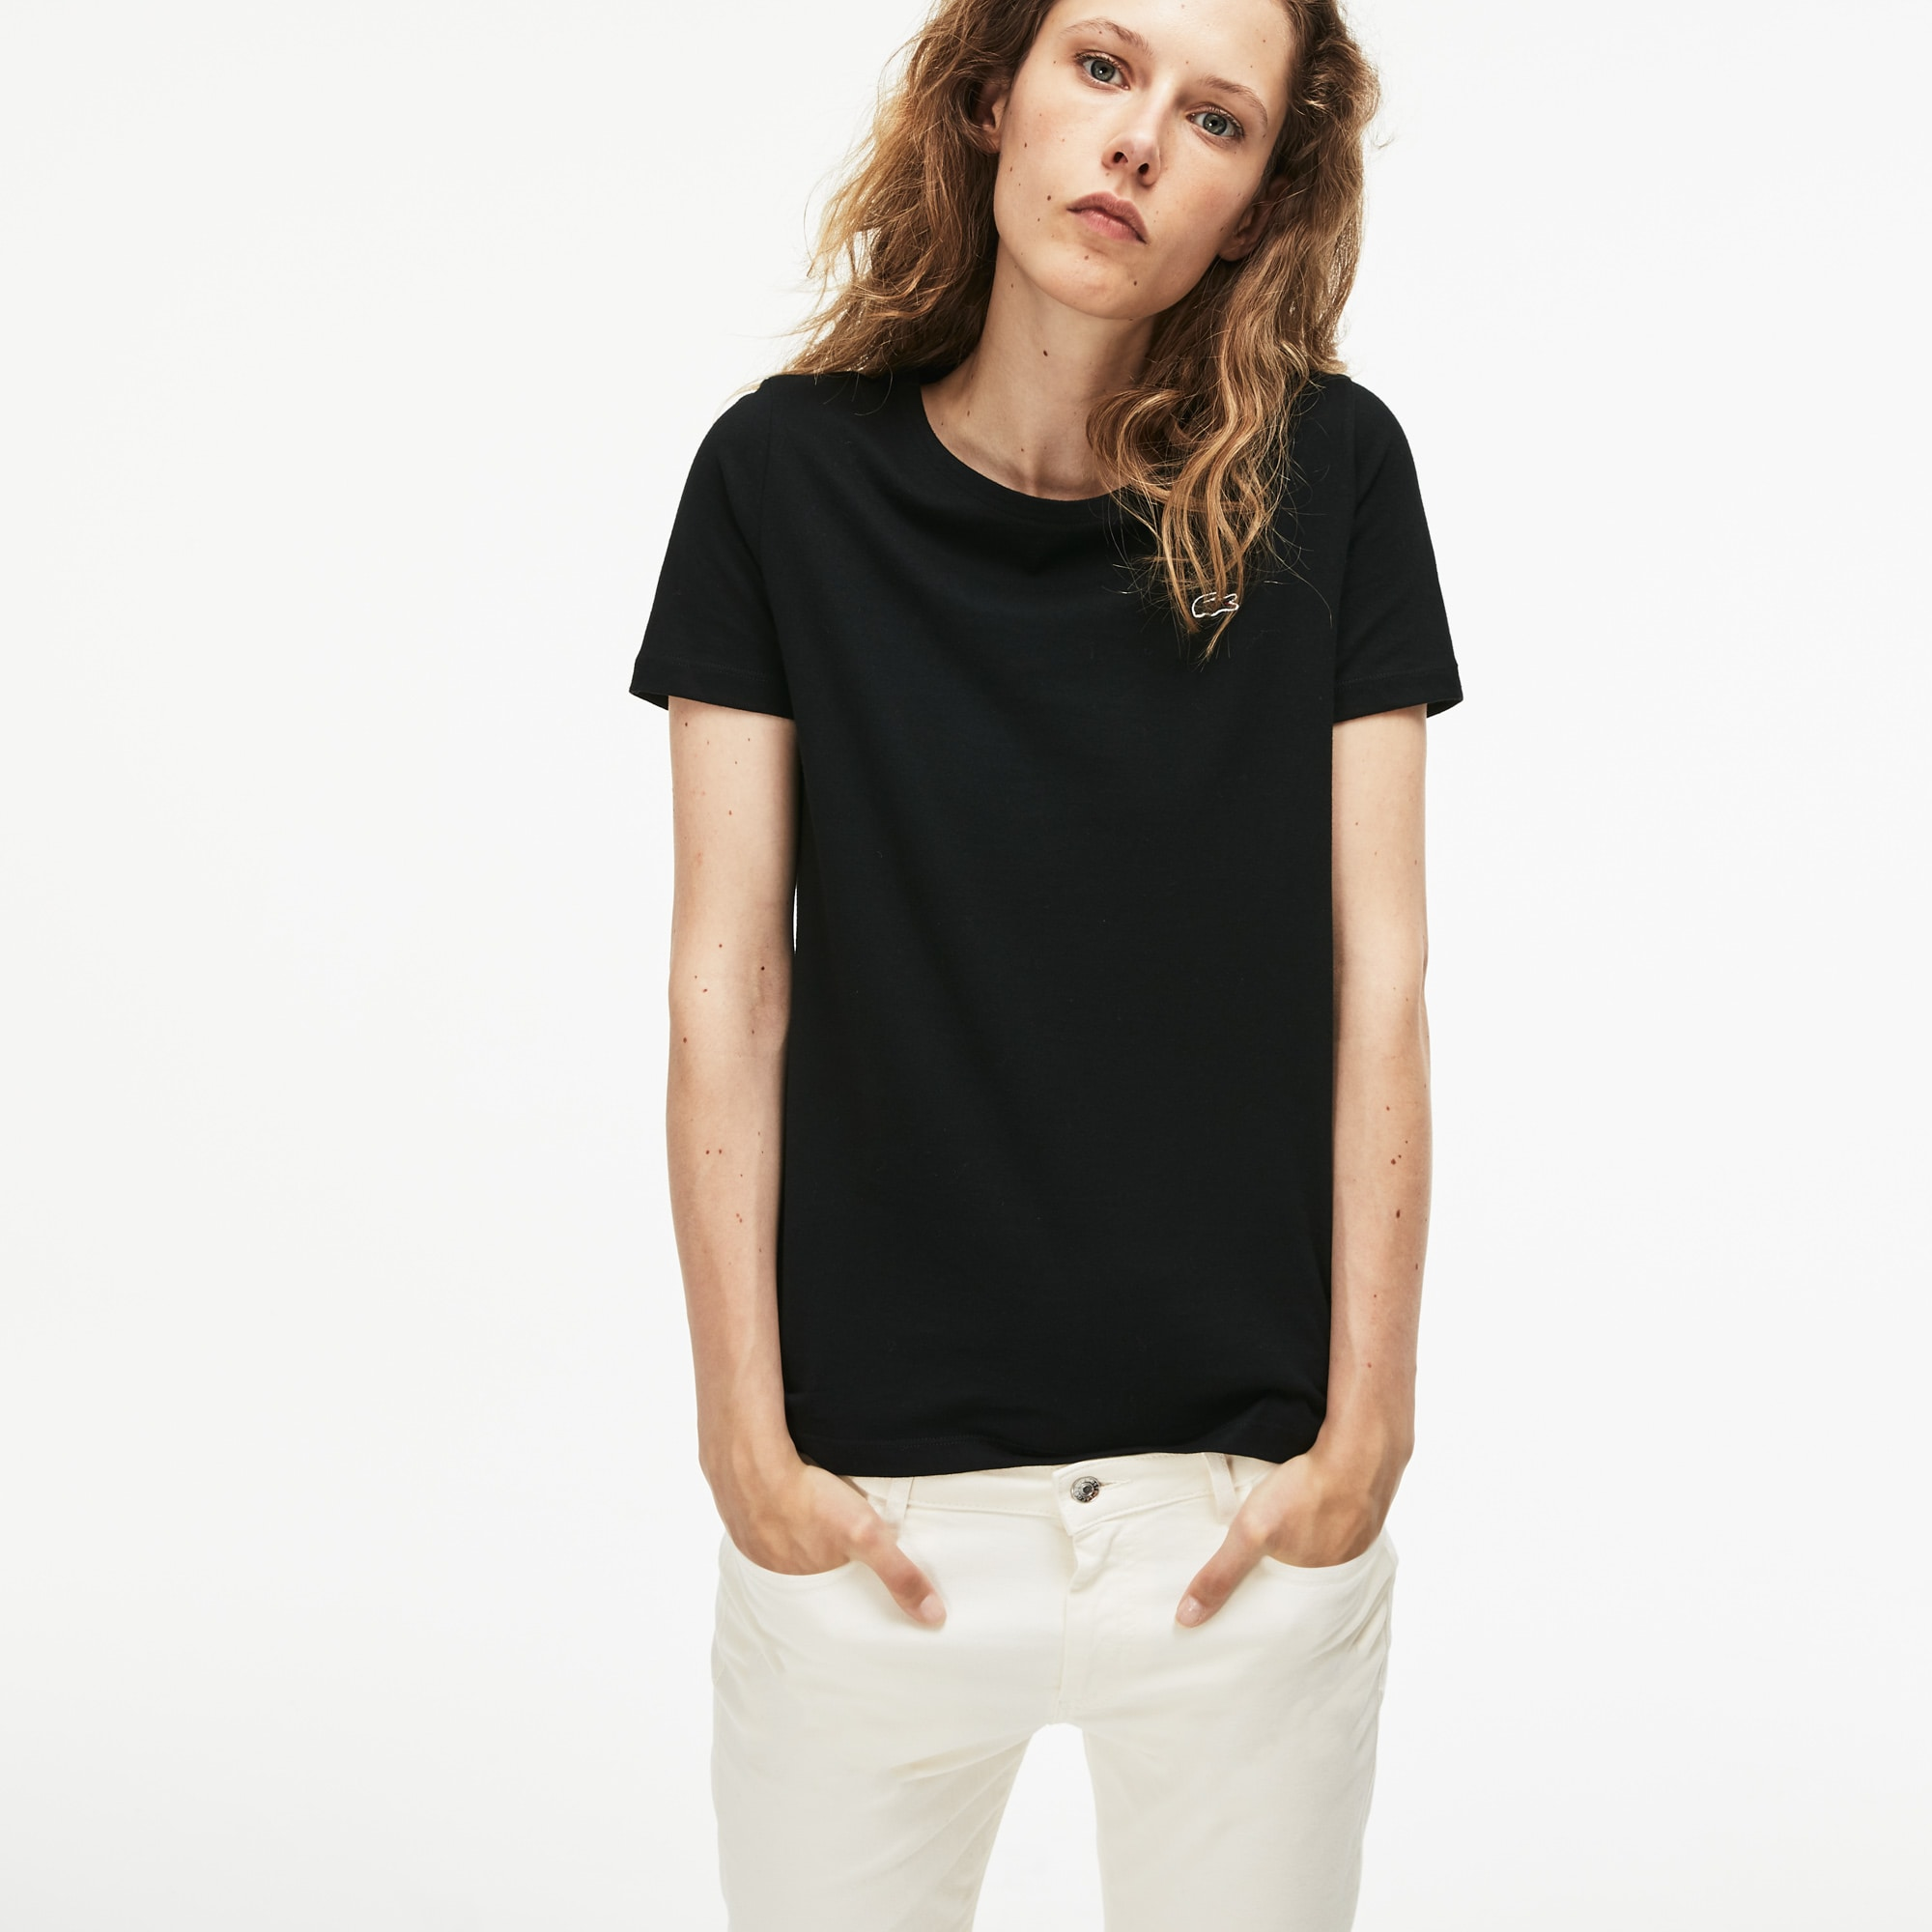 Women's Crew Neck Flowing Cotton Jersey T-shirt